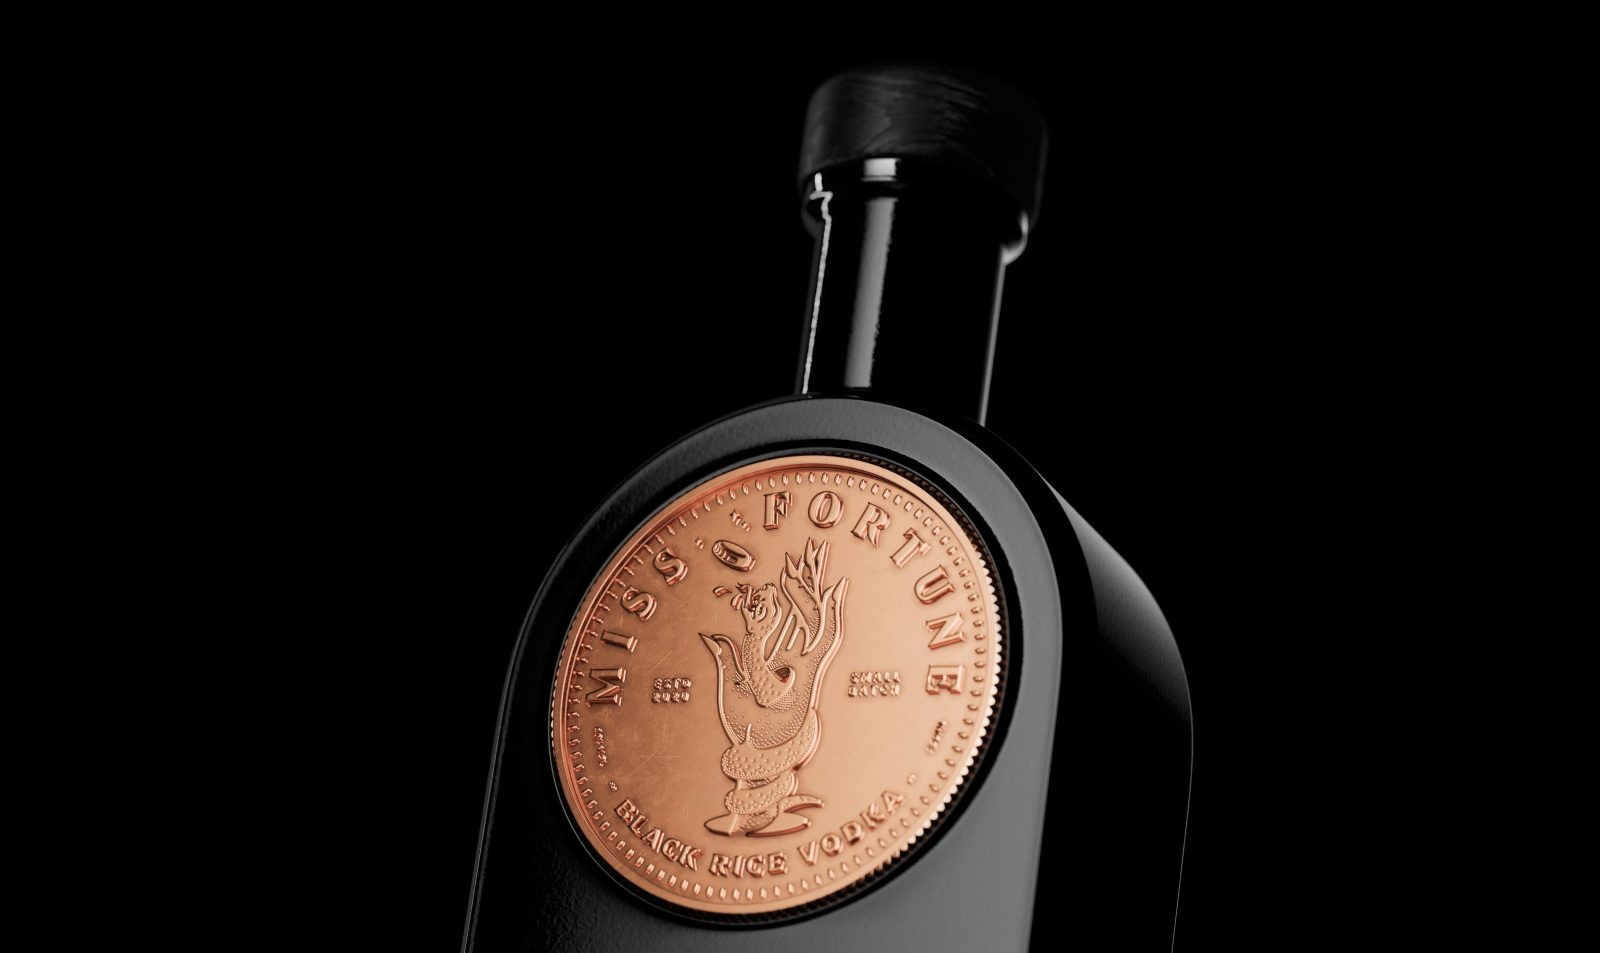 Studio Unbound Reveal Concept for 'Miss Fortune' a Small Batch Black Rice Vodka